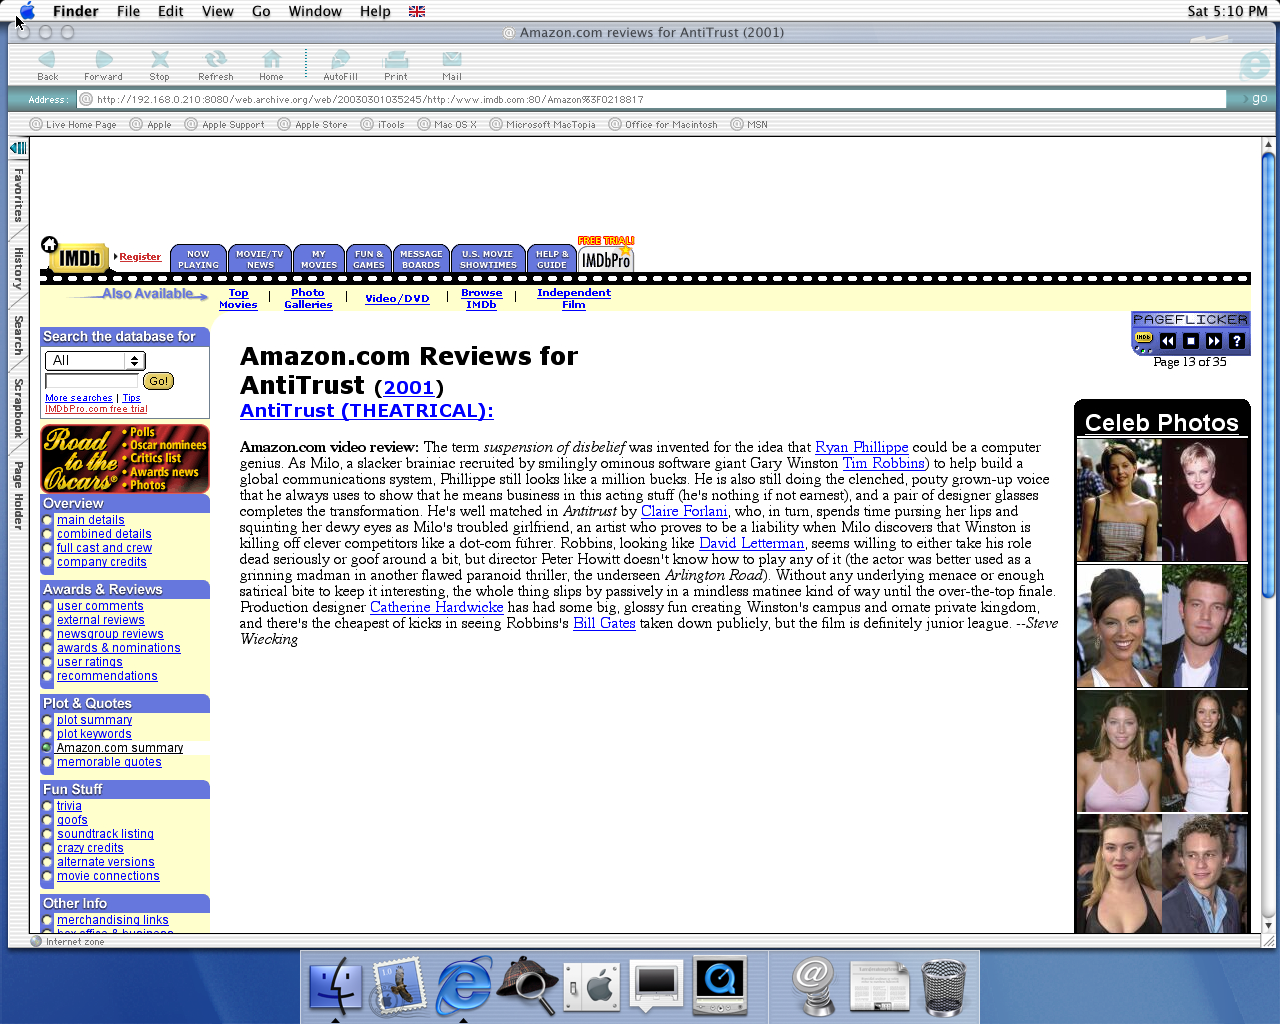 OS X 10.0 PPC with Microsoft Internet Explorer 5.1 for Mac Preview displaying a page from IMDB archived at March 01, 2003 at 03:52:45